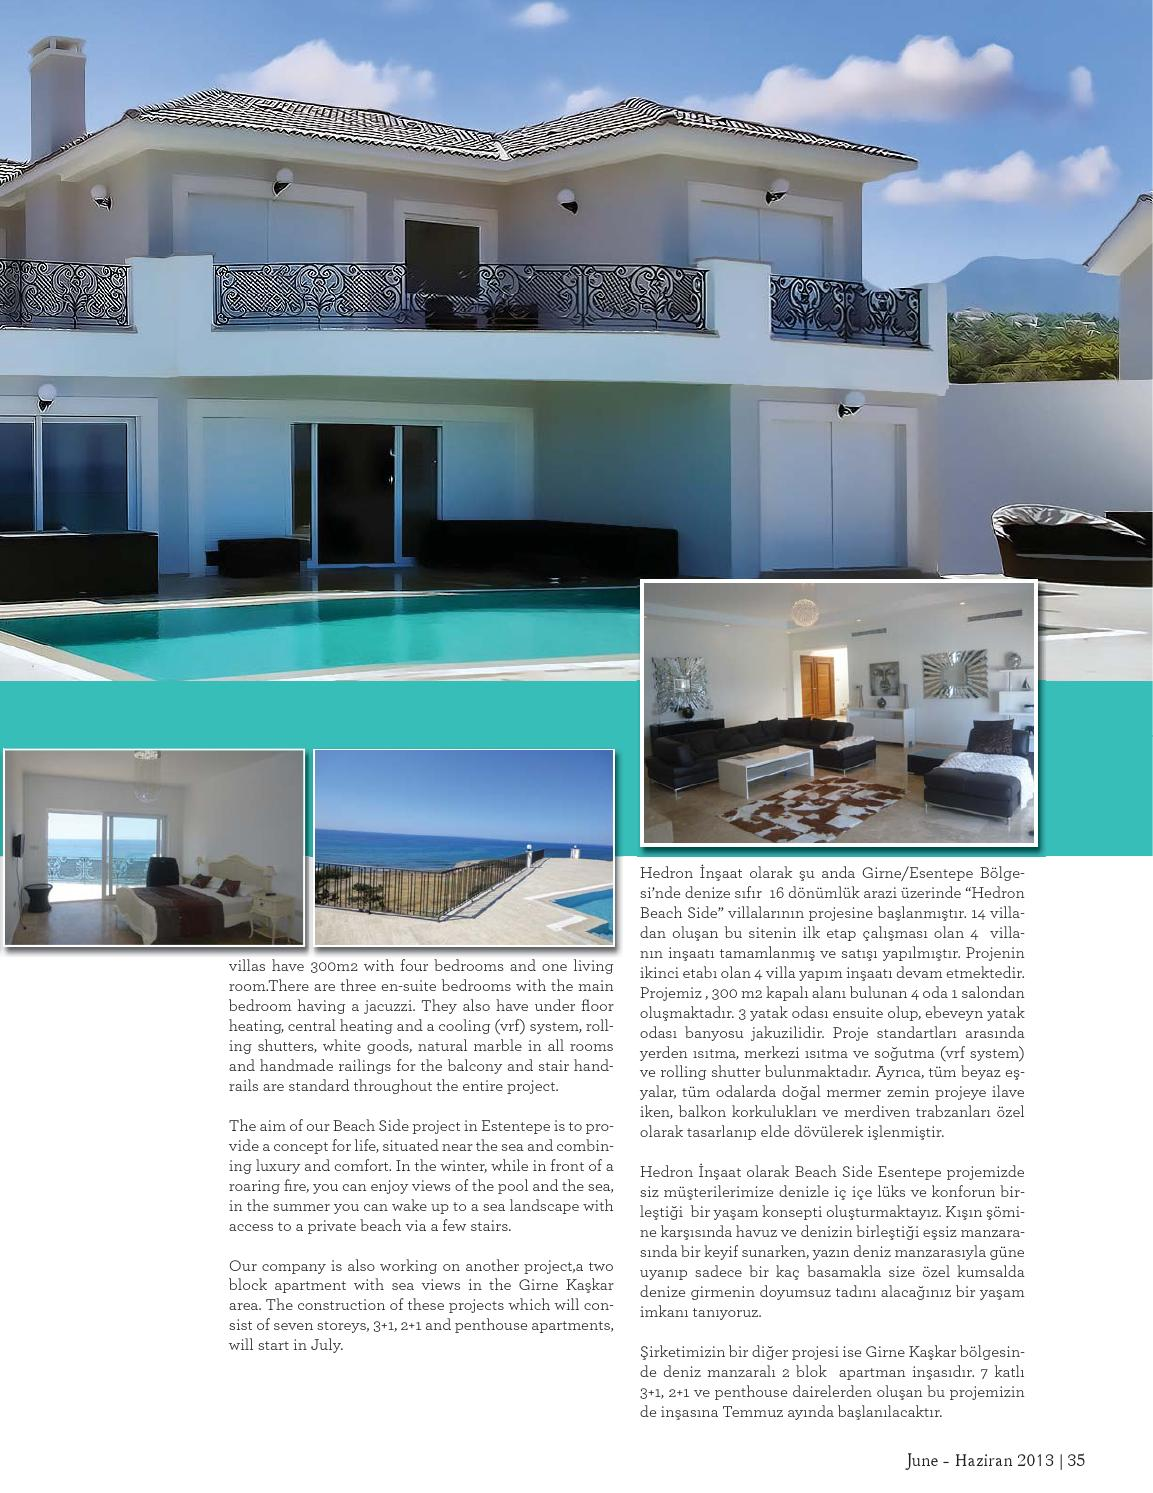 Pnc issue 71 by PROPERTY NC MAGAZINE - issuu